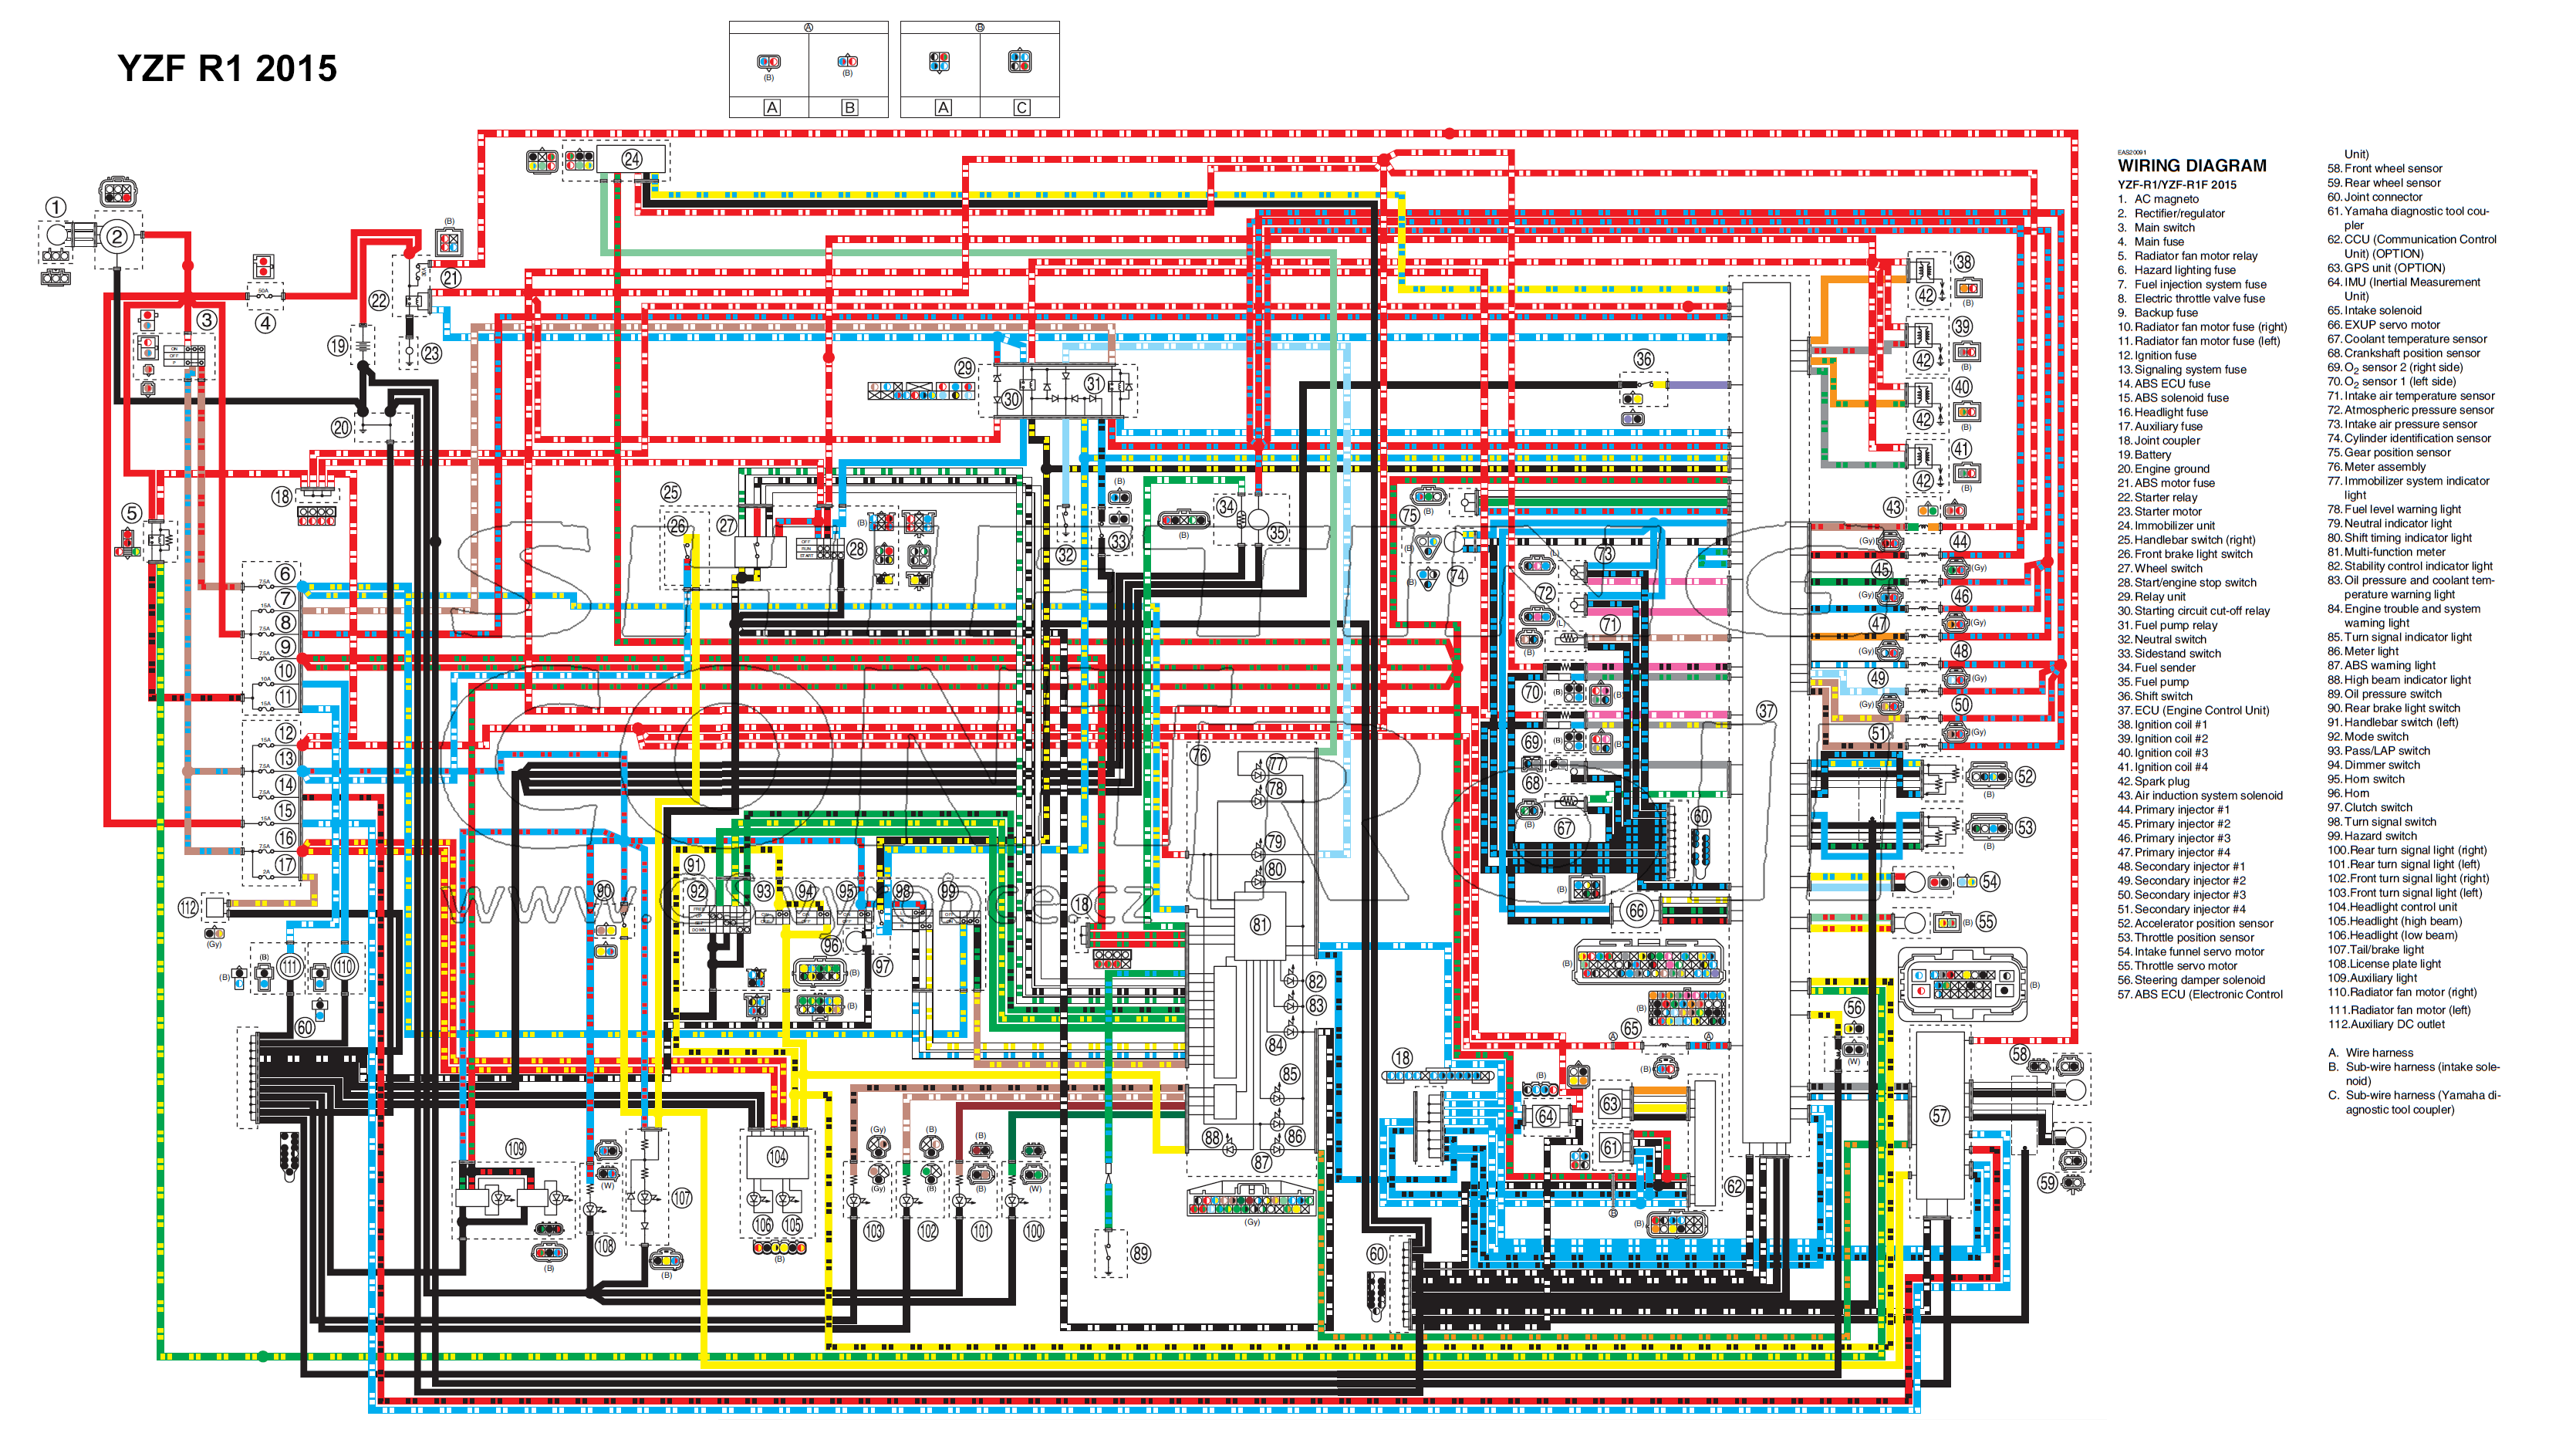 Yzf R1 Wire Diagram Free Wiring For You 1982 Yamaha Dt 100 2003 Electrical Diagrams Rh 56 Phd Medical Faculty Hamburg De